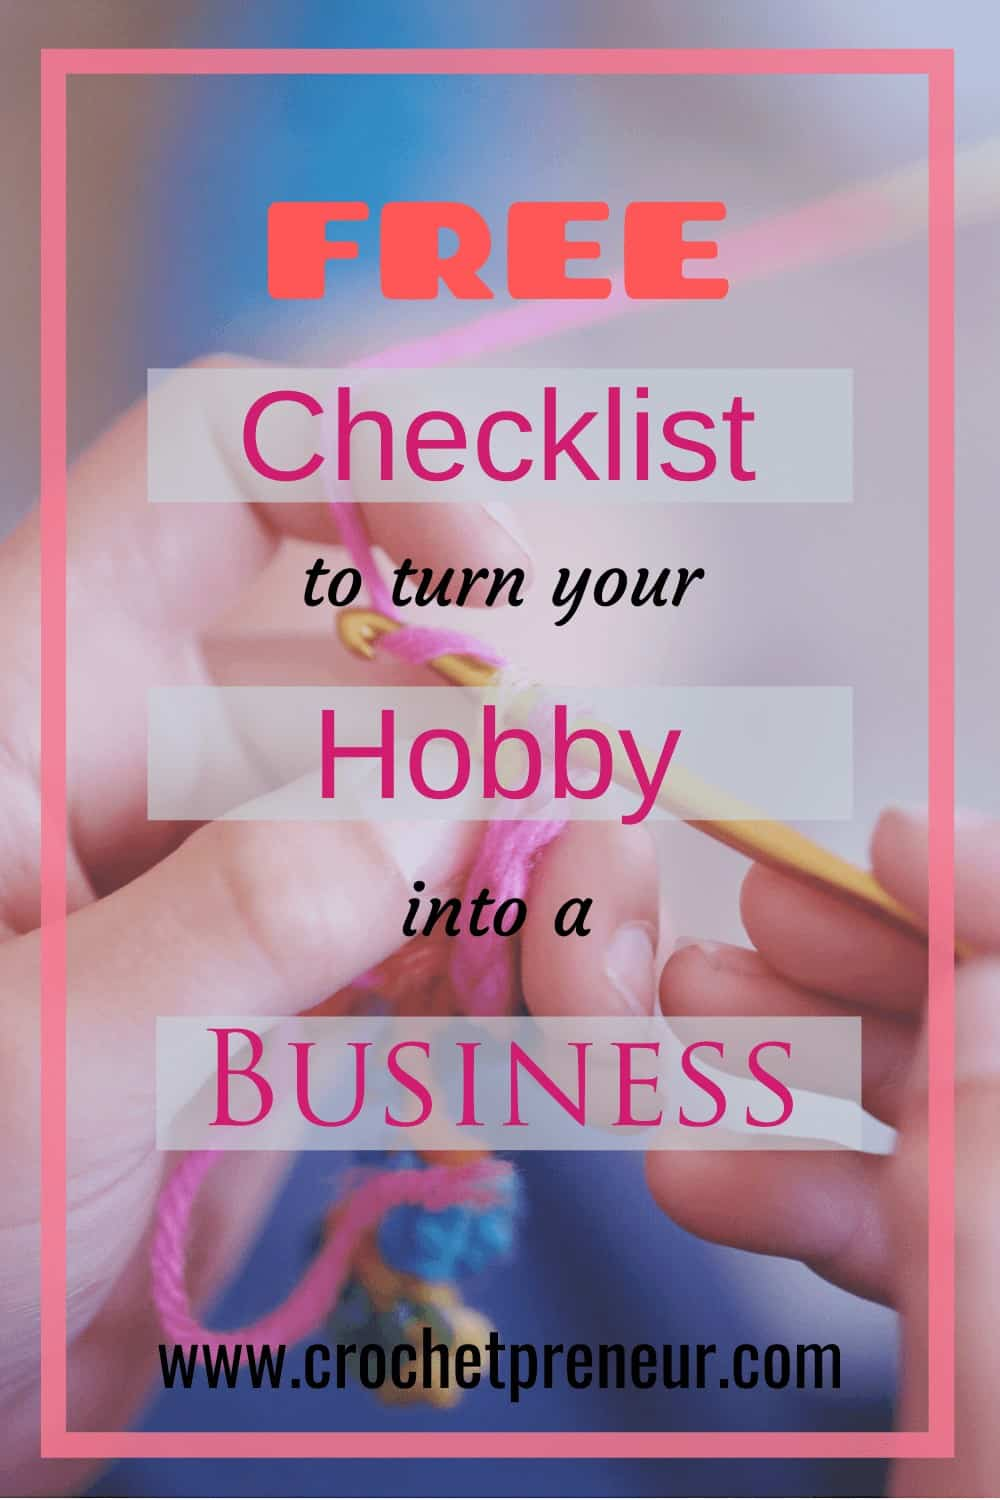 Pinterest graphic for FREE Checklist to turn your Hobby into a Business